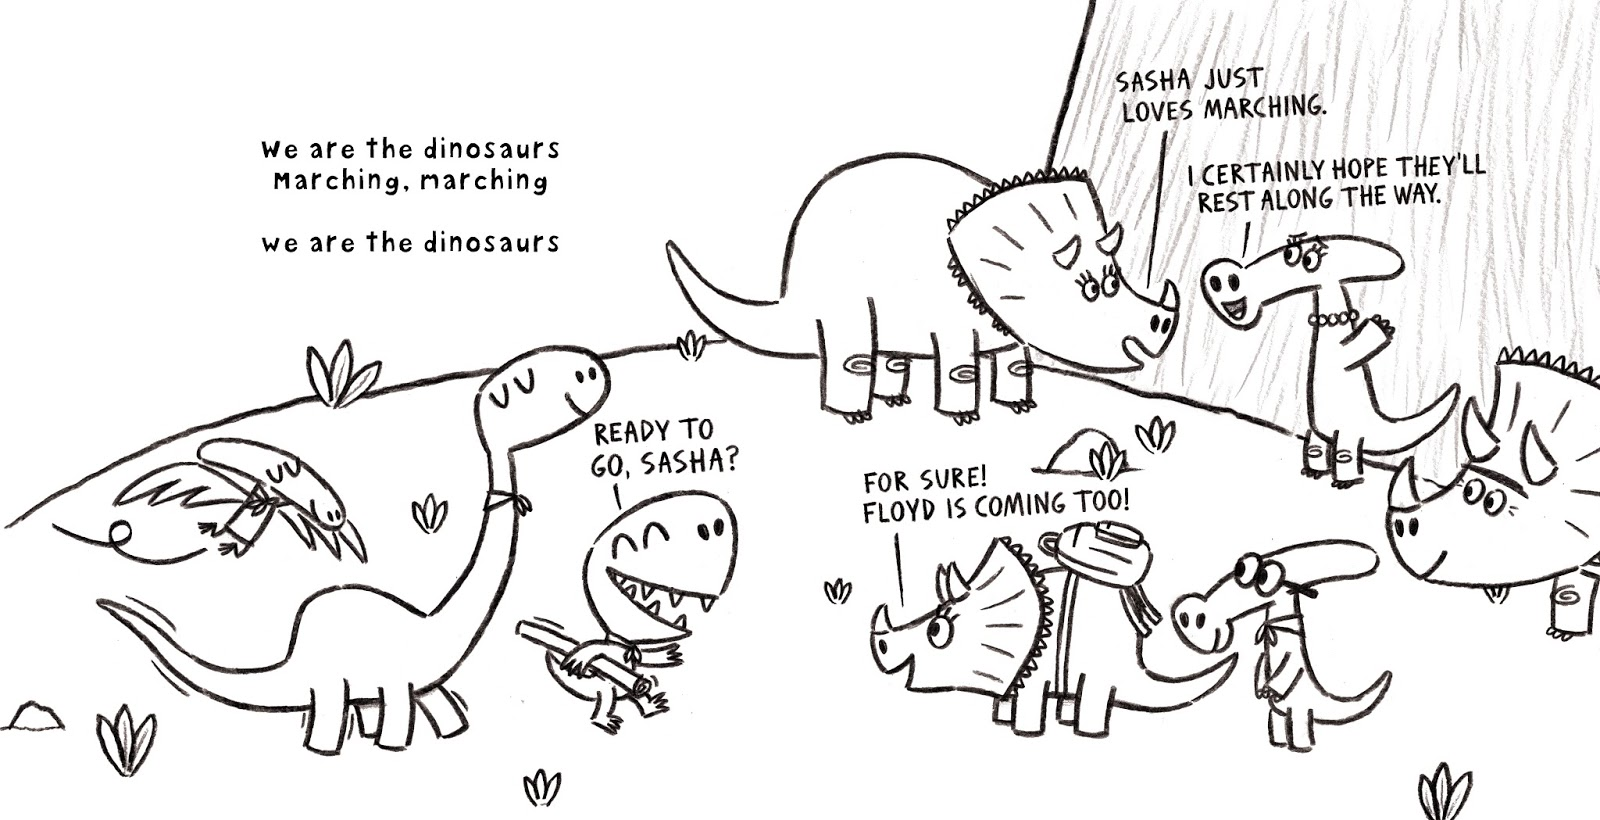 Ben Clanton's Squiggles and Scribbles: WE ARE THE DINOSAURS